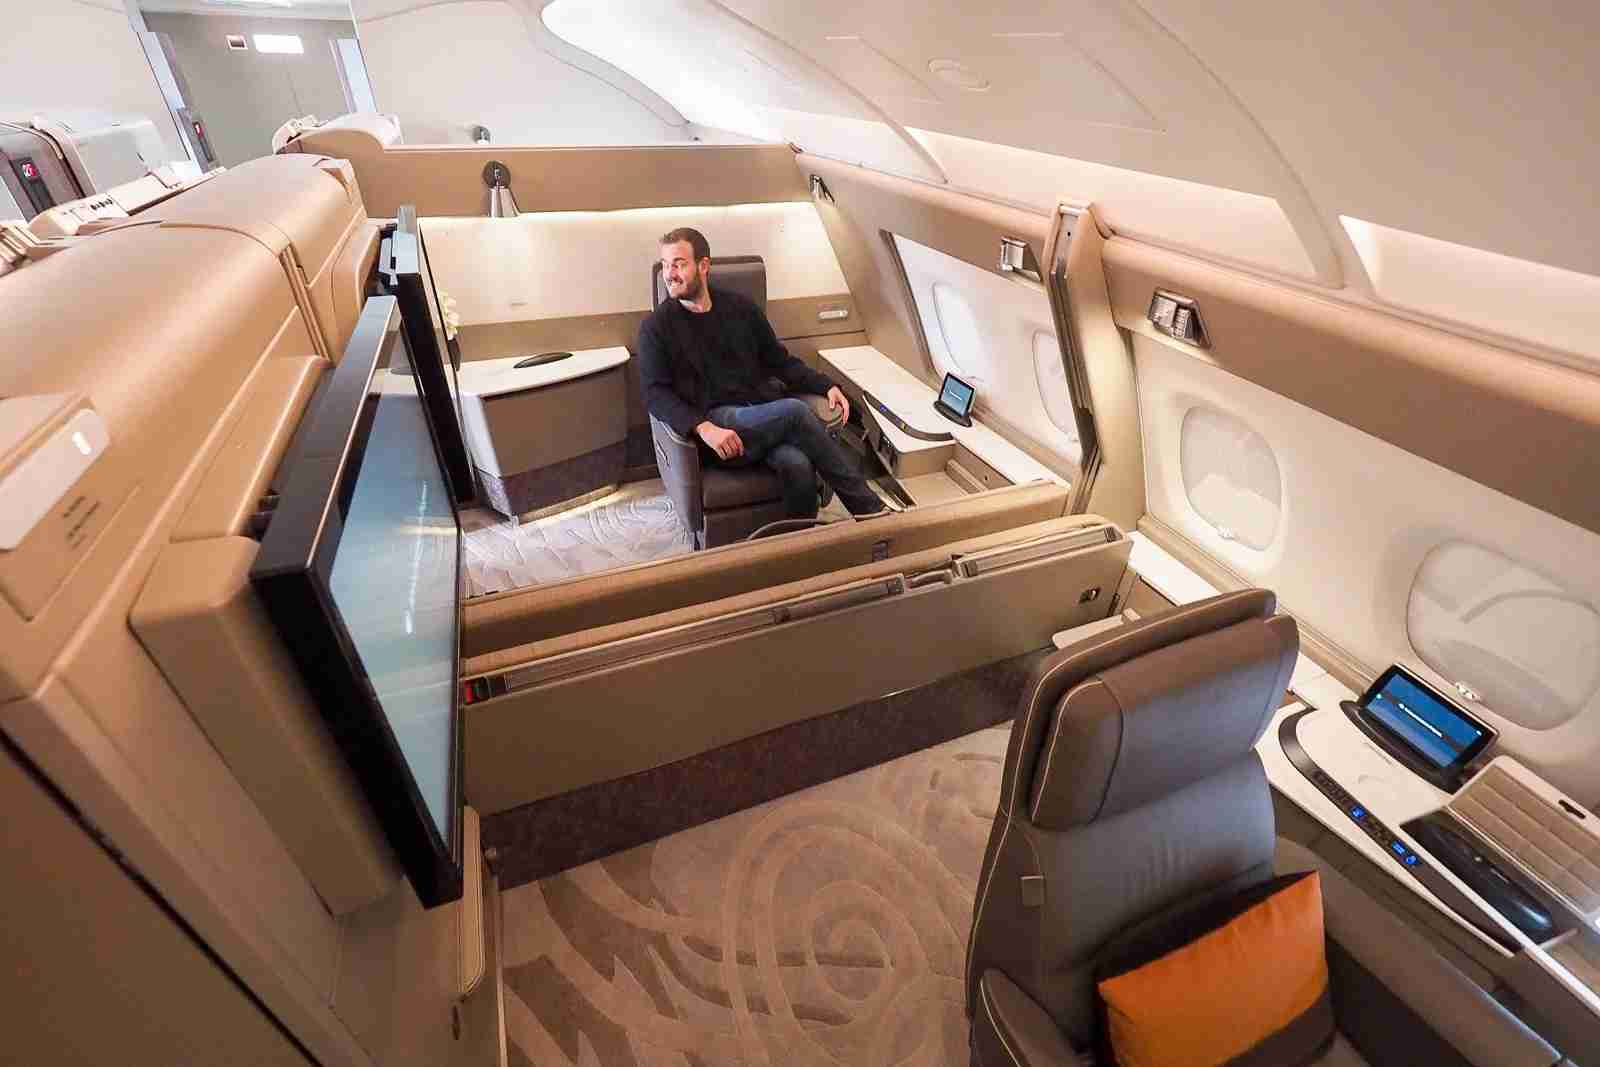 Singapore Airlines A380 First Class Suites. Photo by Brian Kelly / The Points Guy